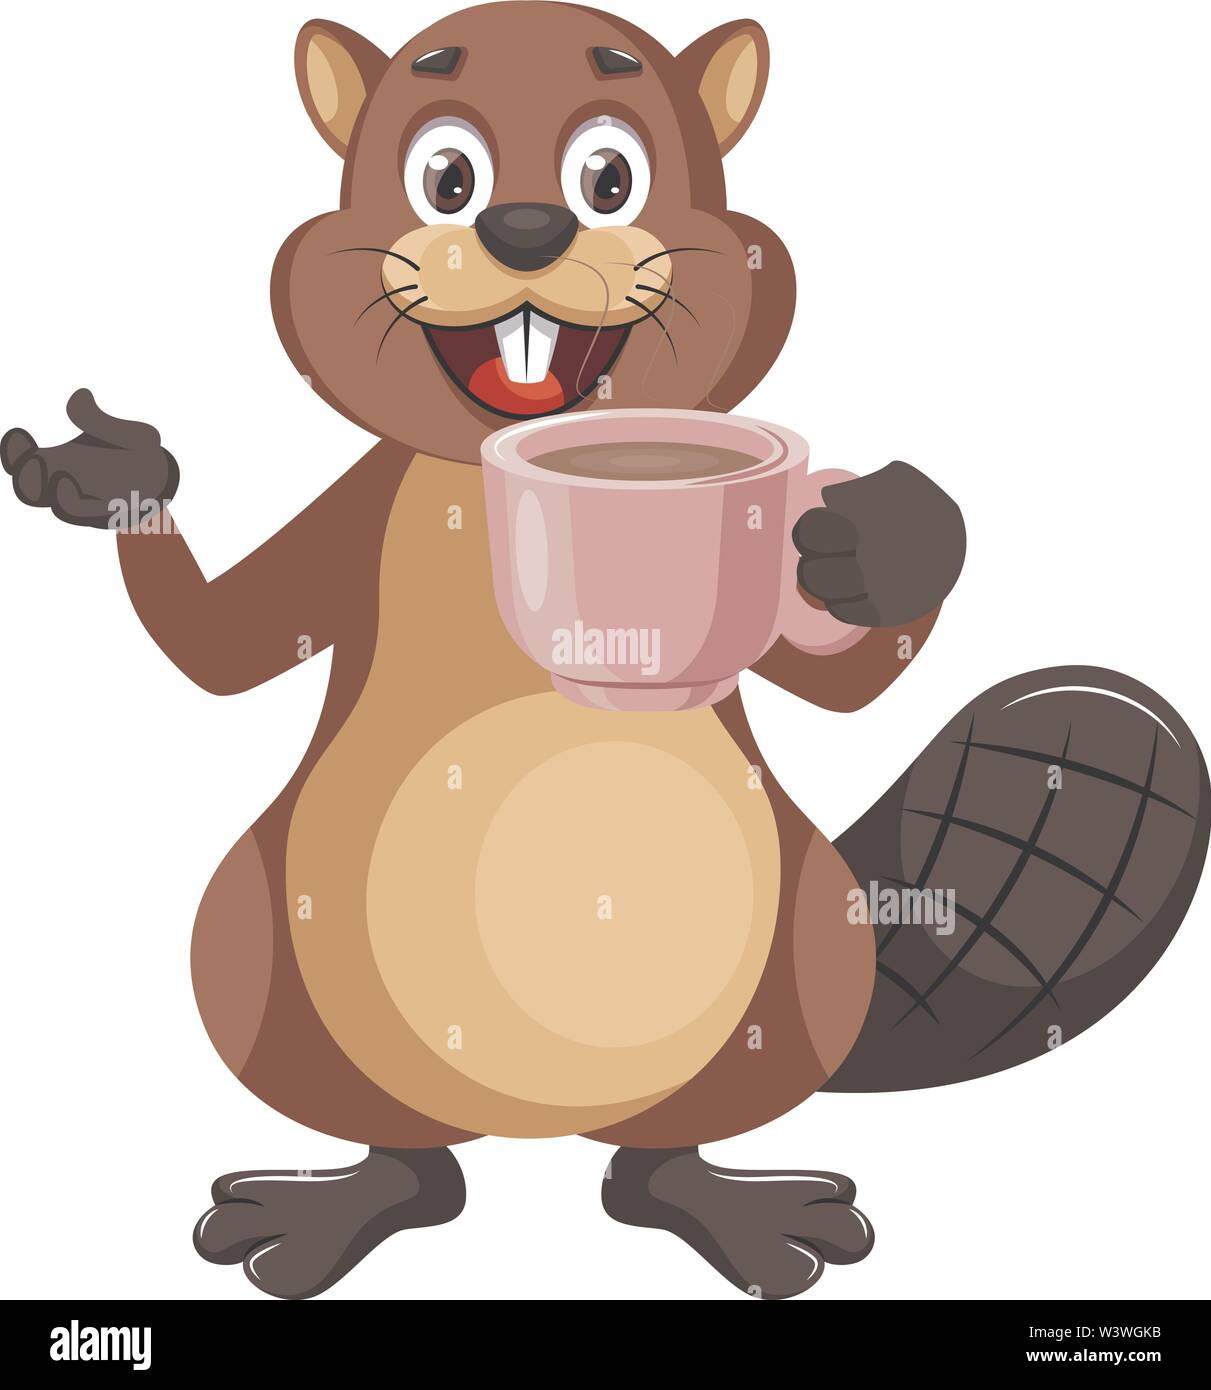 Beaver with cup of coffee, illustration, vector on white background. - Stock Image